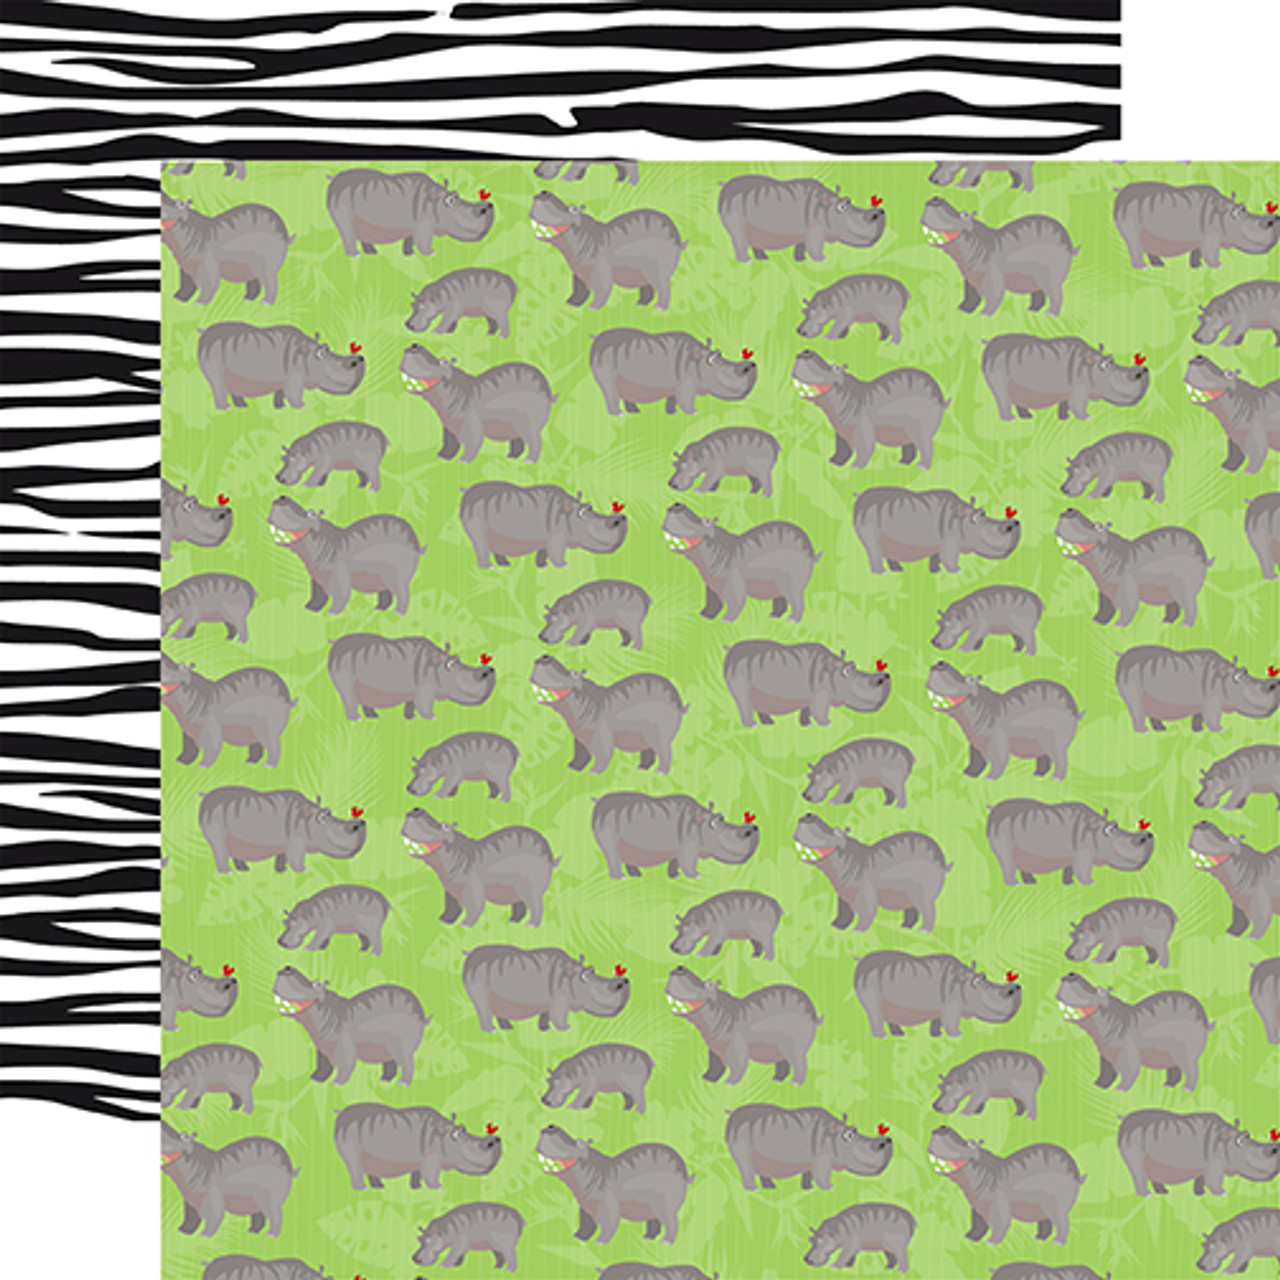 Zoo Adventure Collection Hippos 12 x 12 Double-Sided Scrapbook Paper by Carta Bella